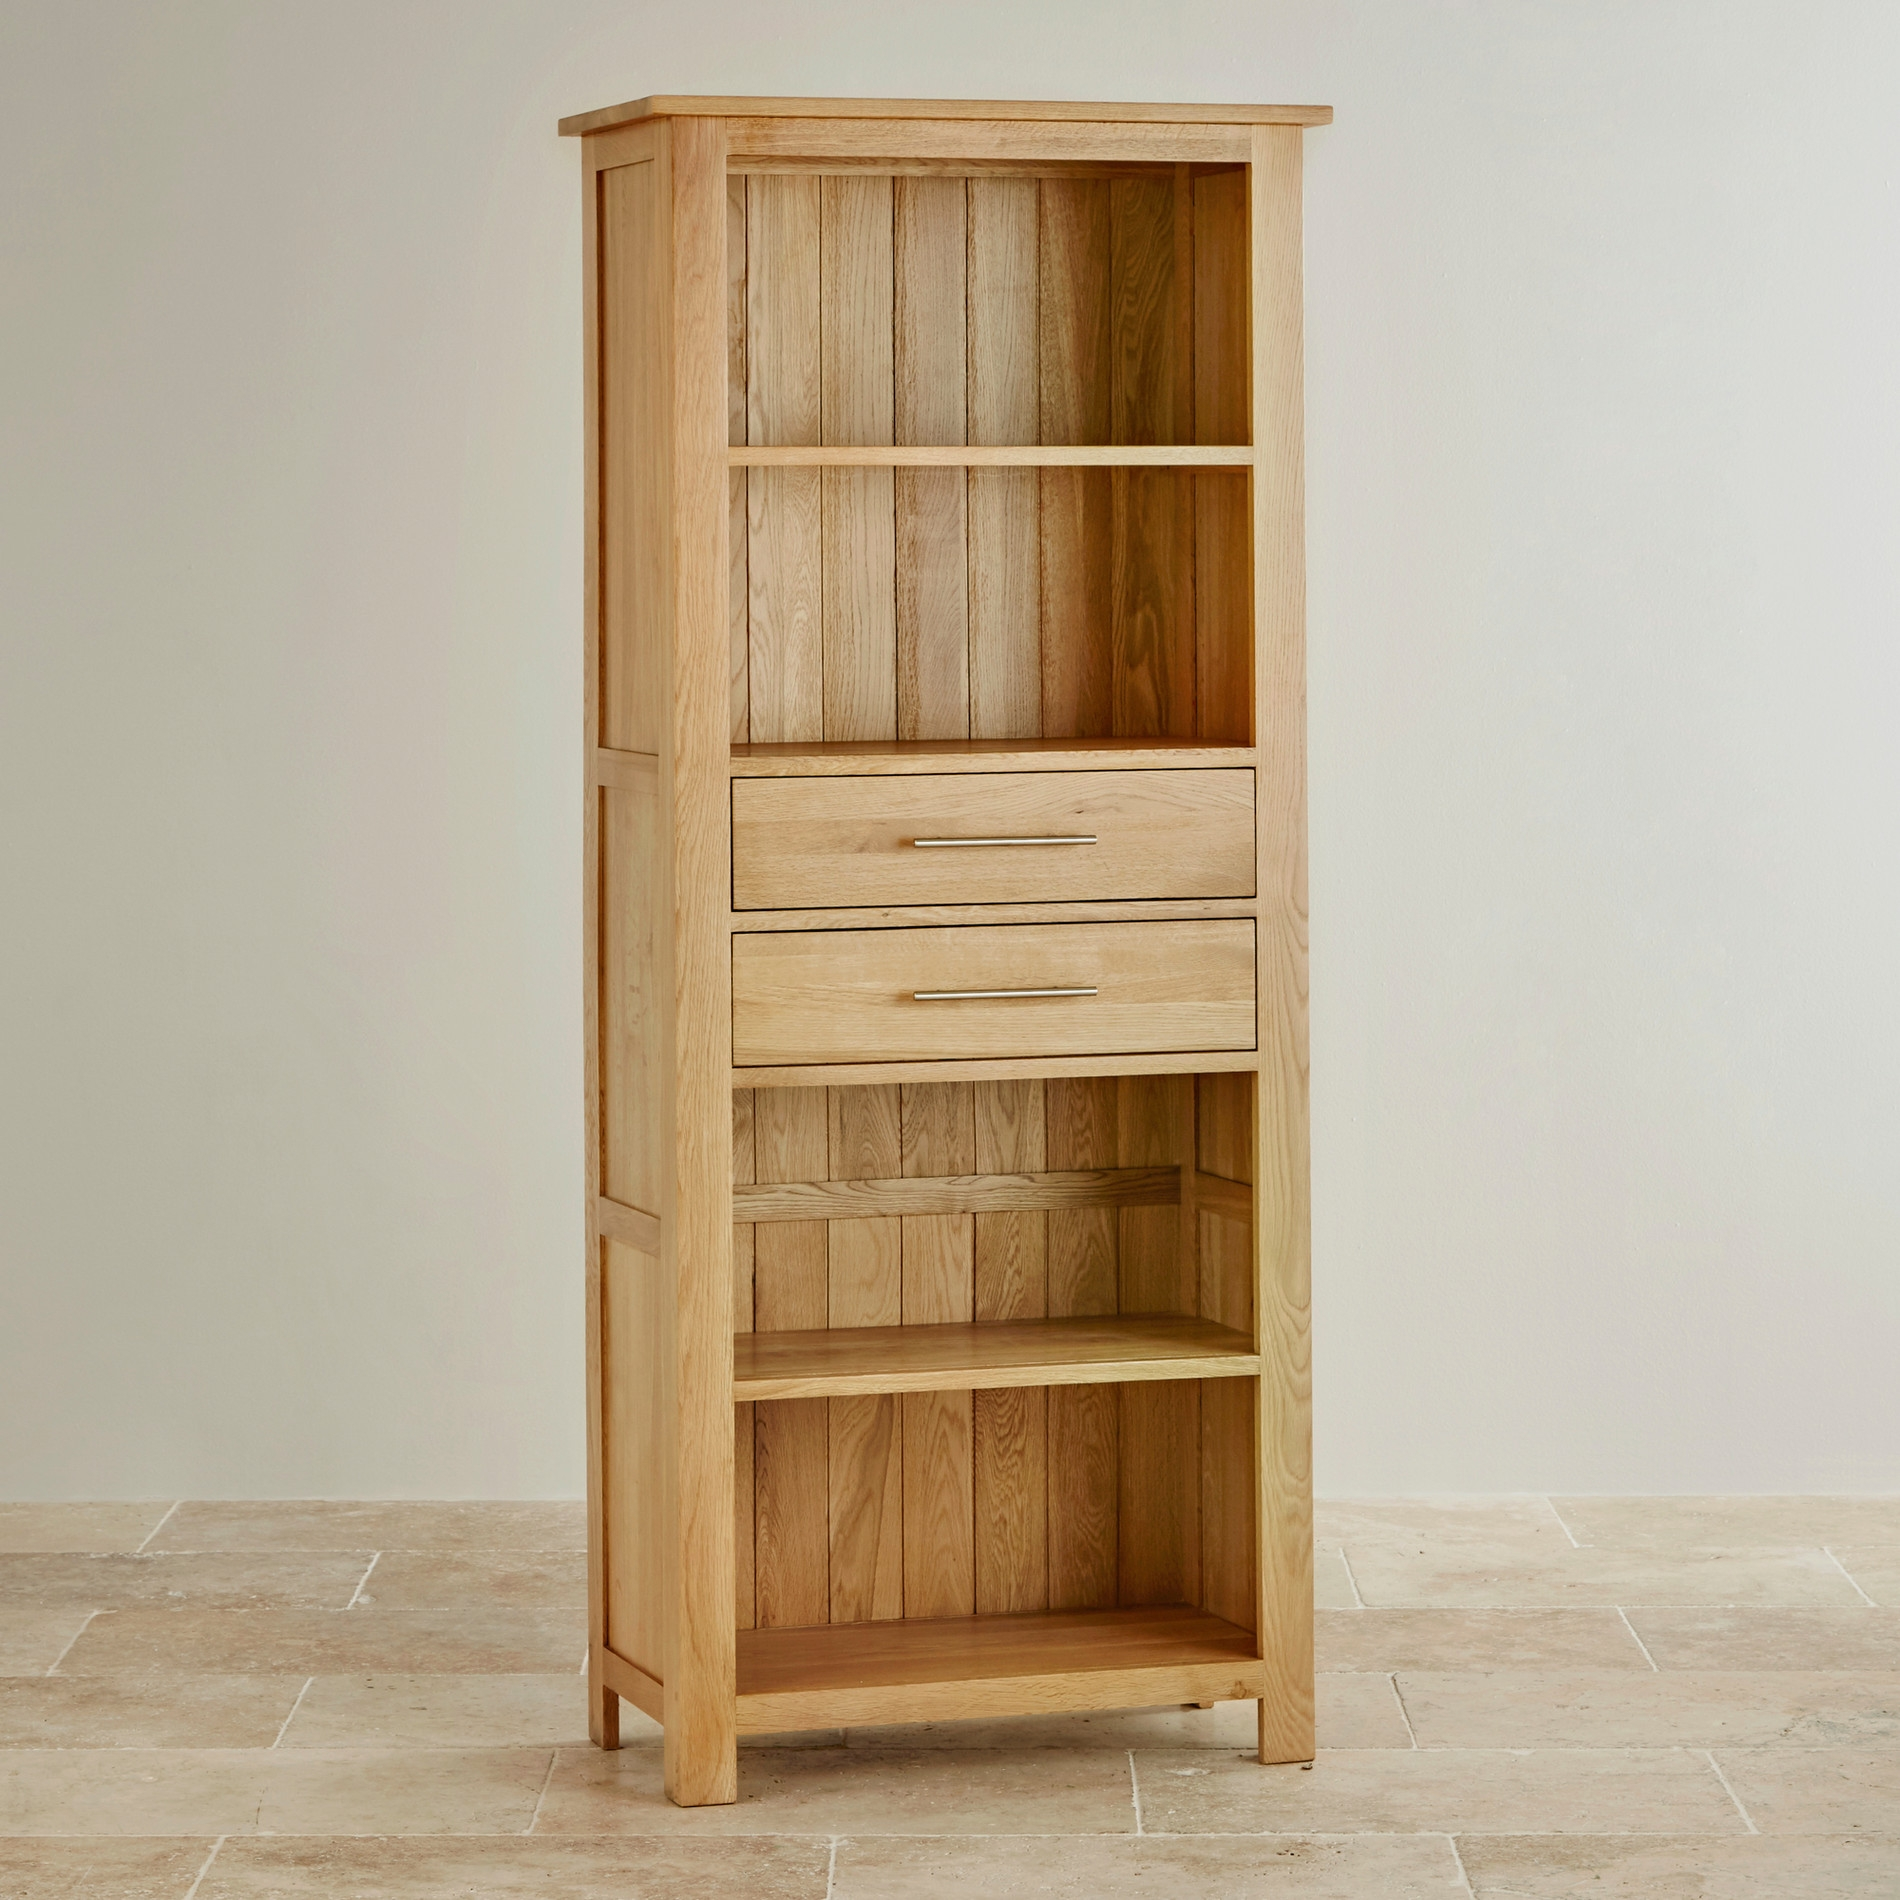 Bookcases Function And Style Oak Furniture Land With Regard To Oak Bookcase (#2 of 8)